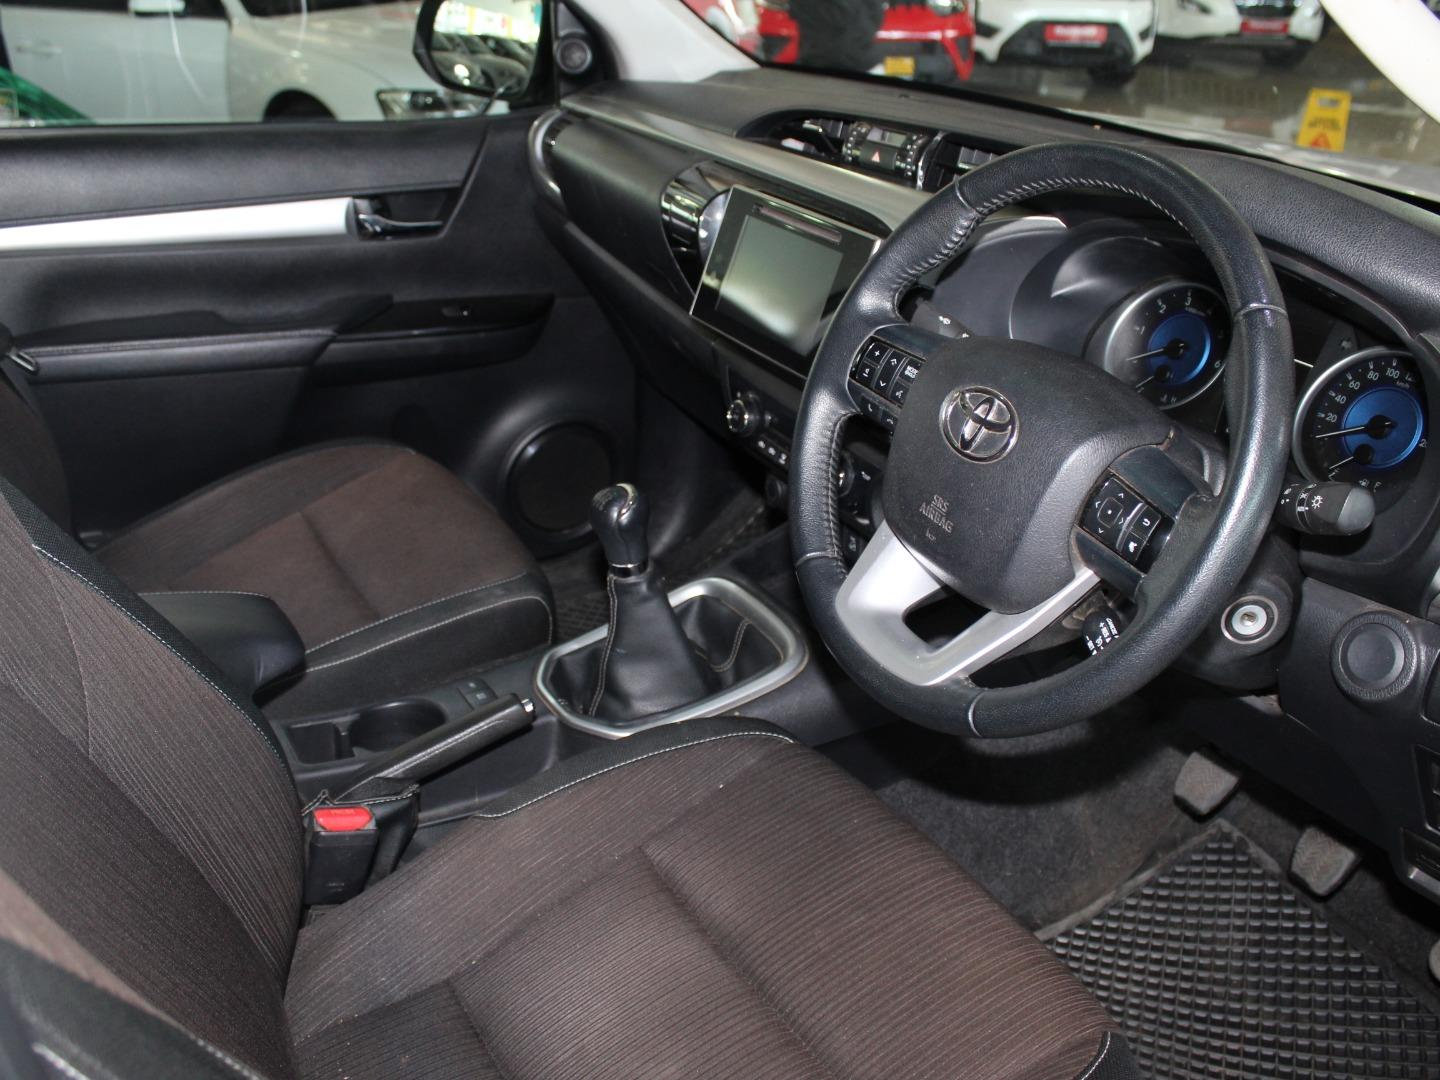 2017 Toyota Hilux 2.8GD-6 Double Cab 4x4 Raider- Picture 6